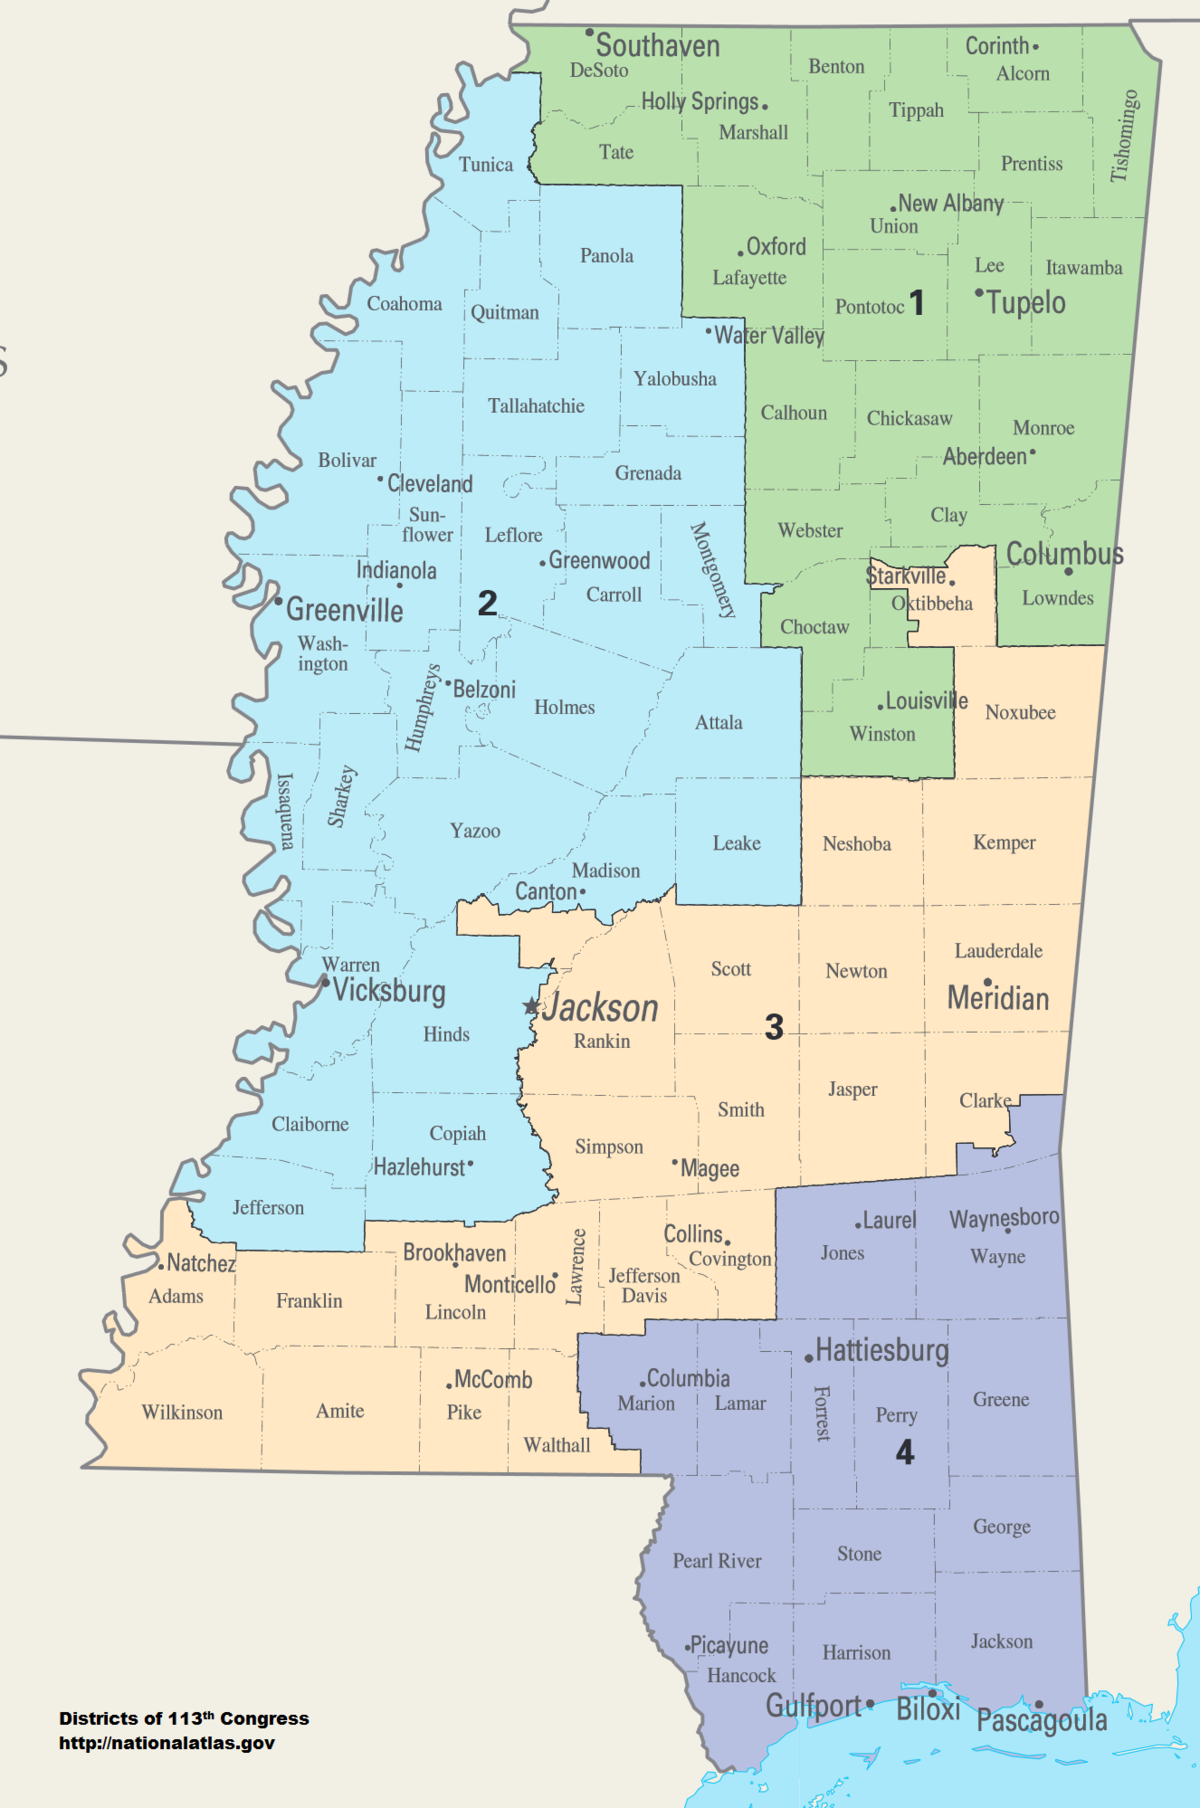 Mississippi House District Map Mississippi's congressional districts   Wikipedia